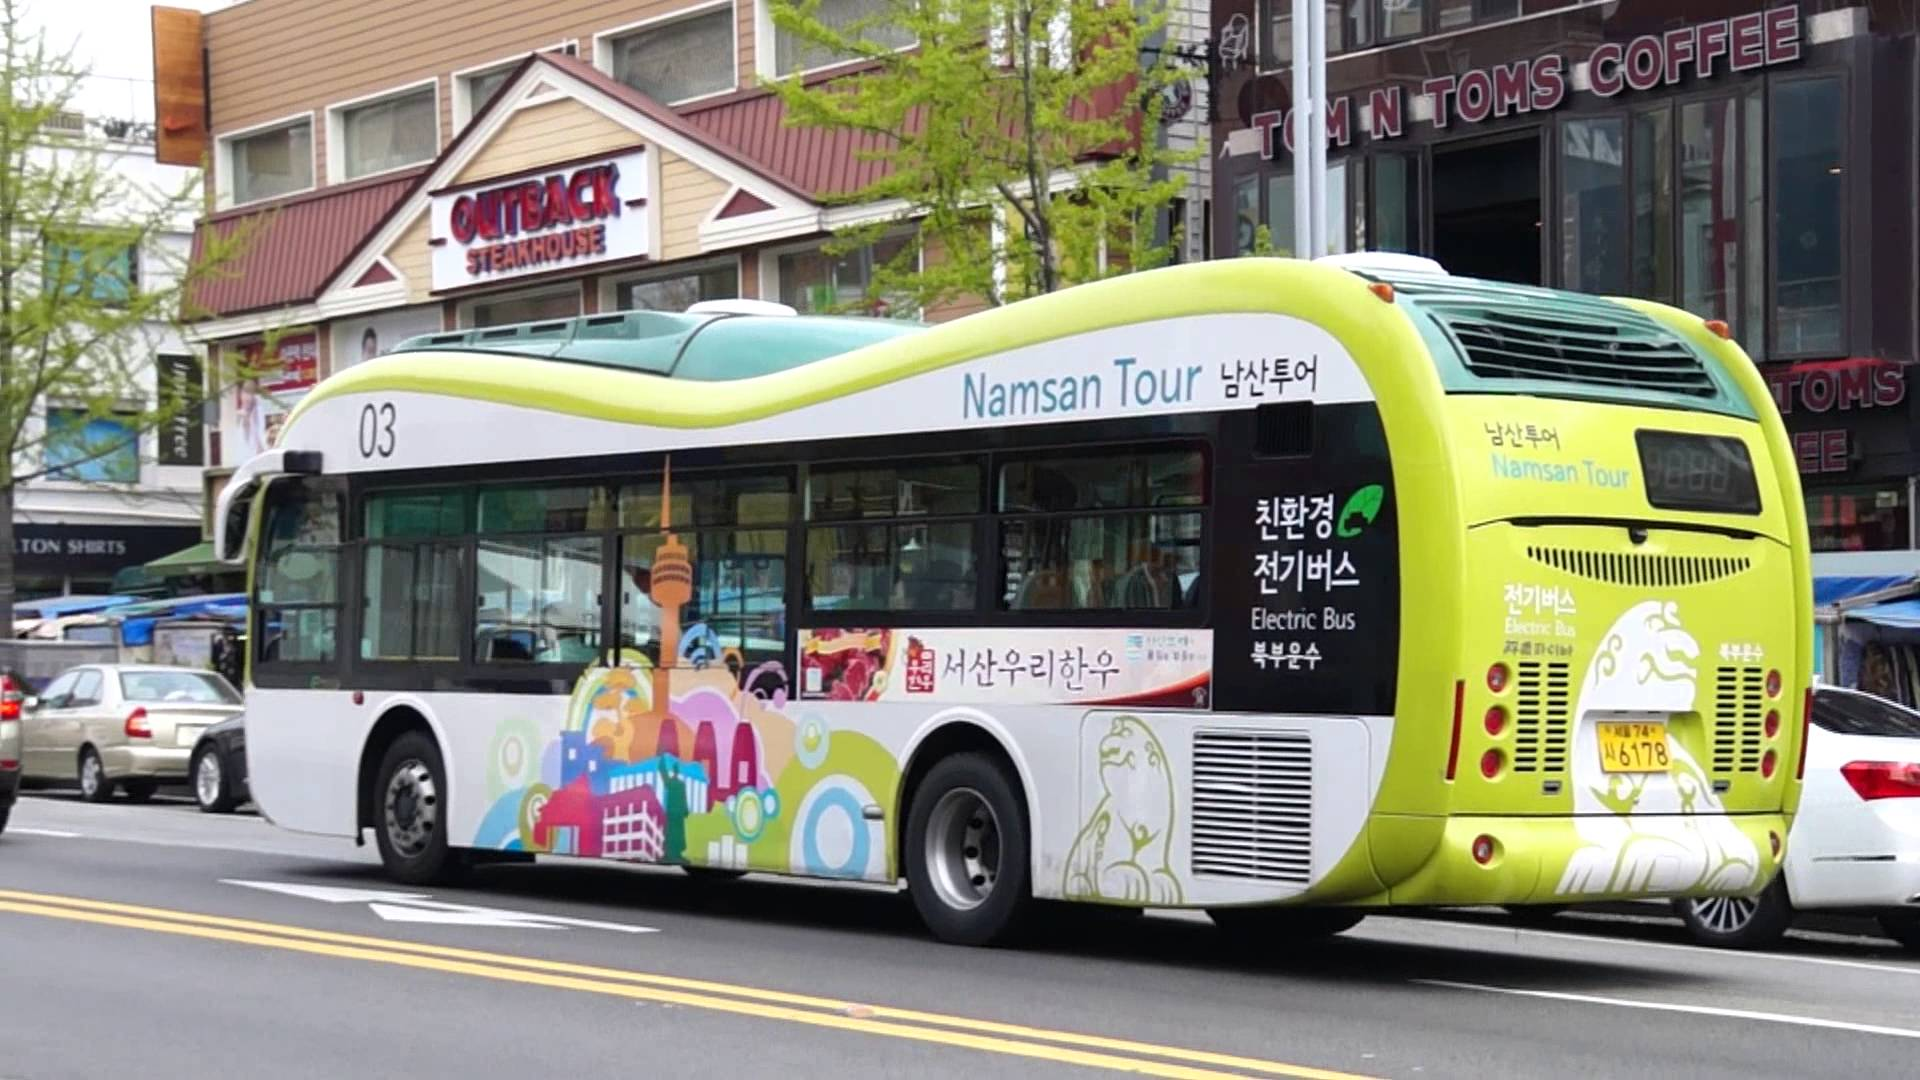 namsan-tour-bus